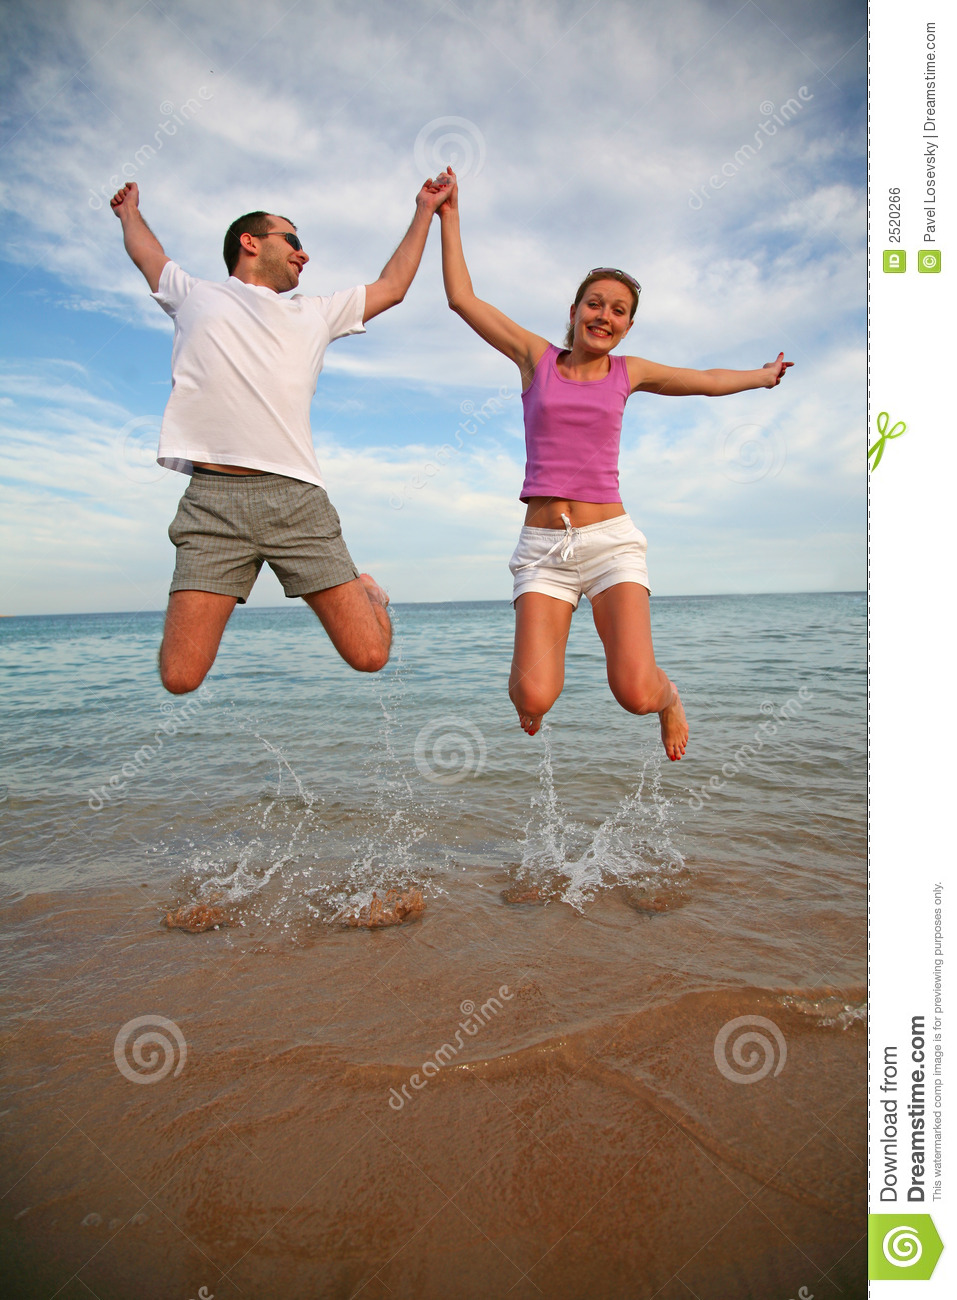 Man and woman jumping